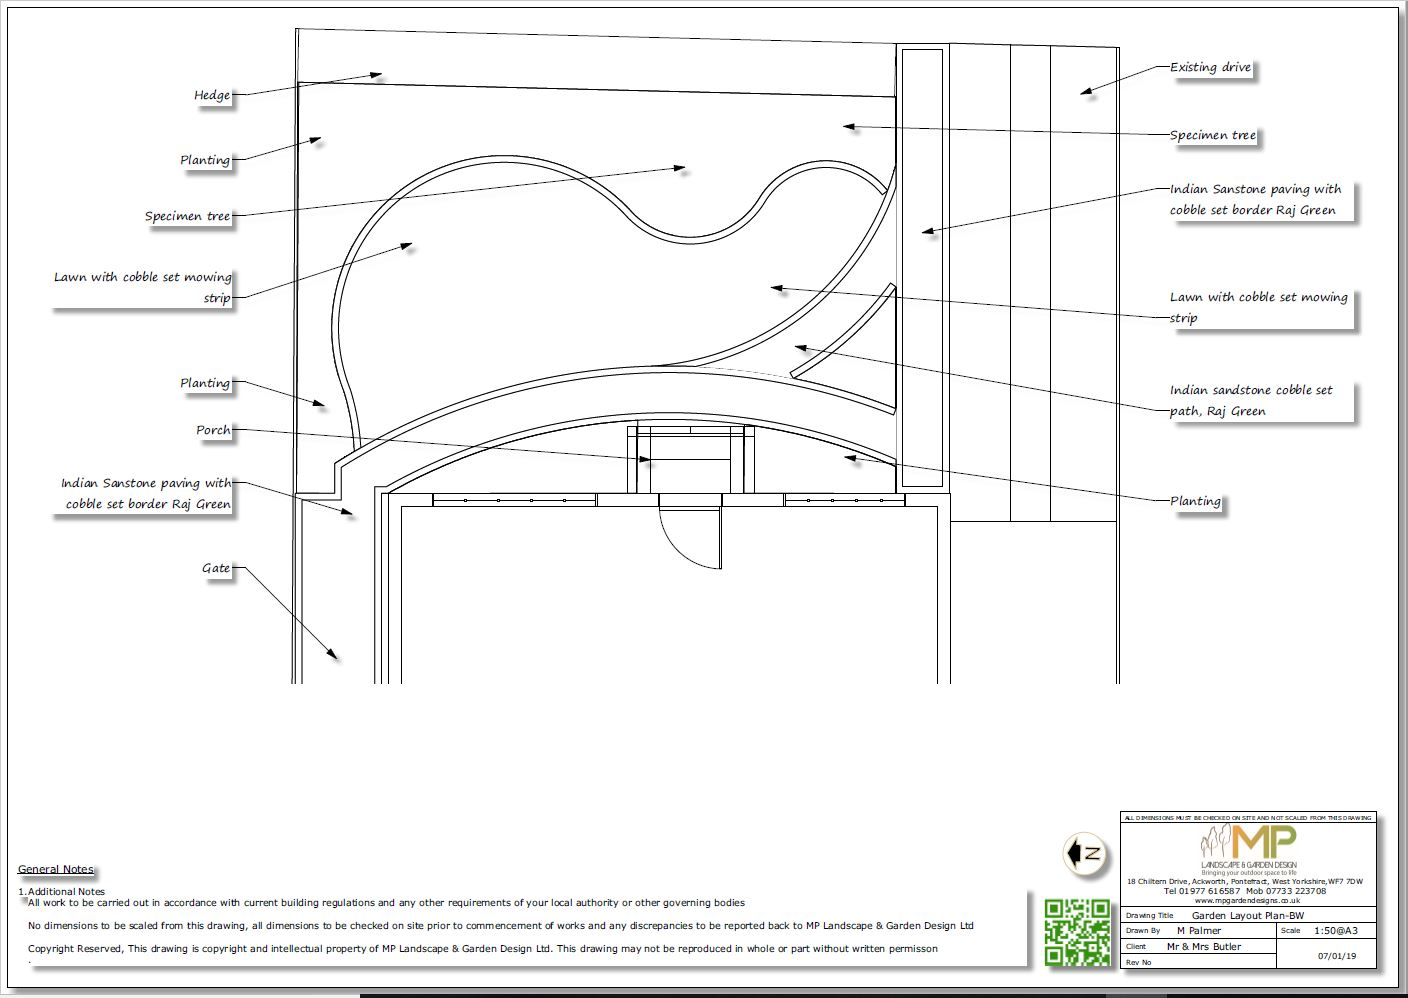 Garden design black and white layout plans for a front garden in Ackworth, Pontefract.